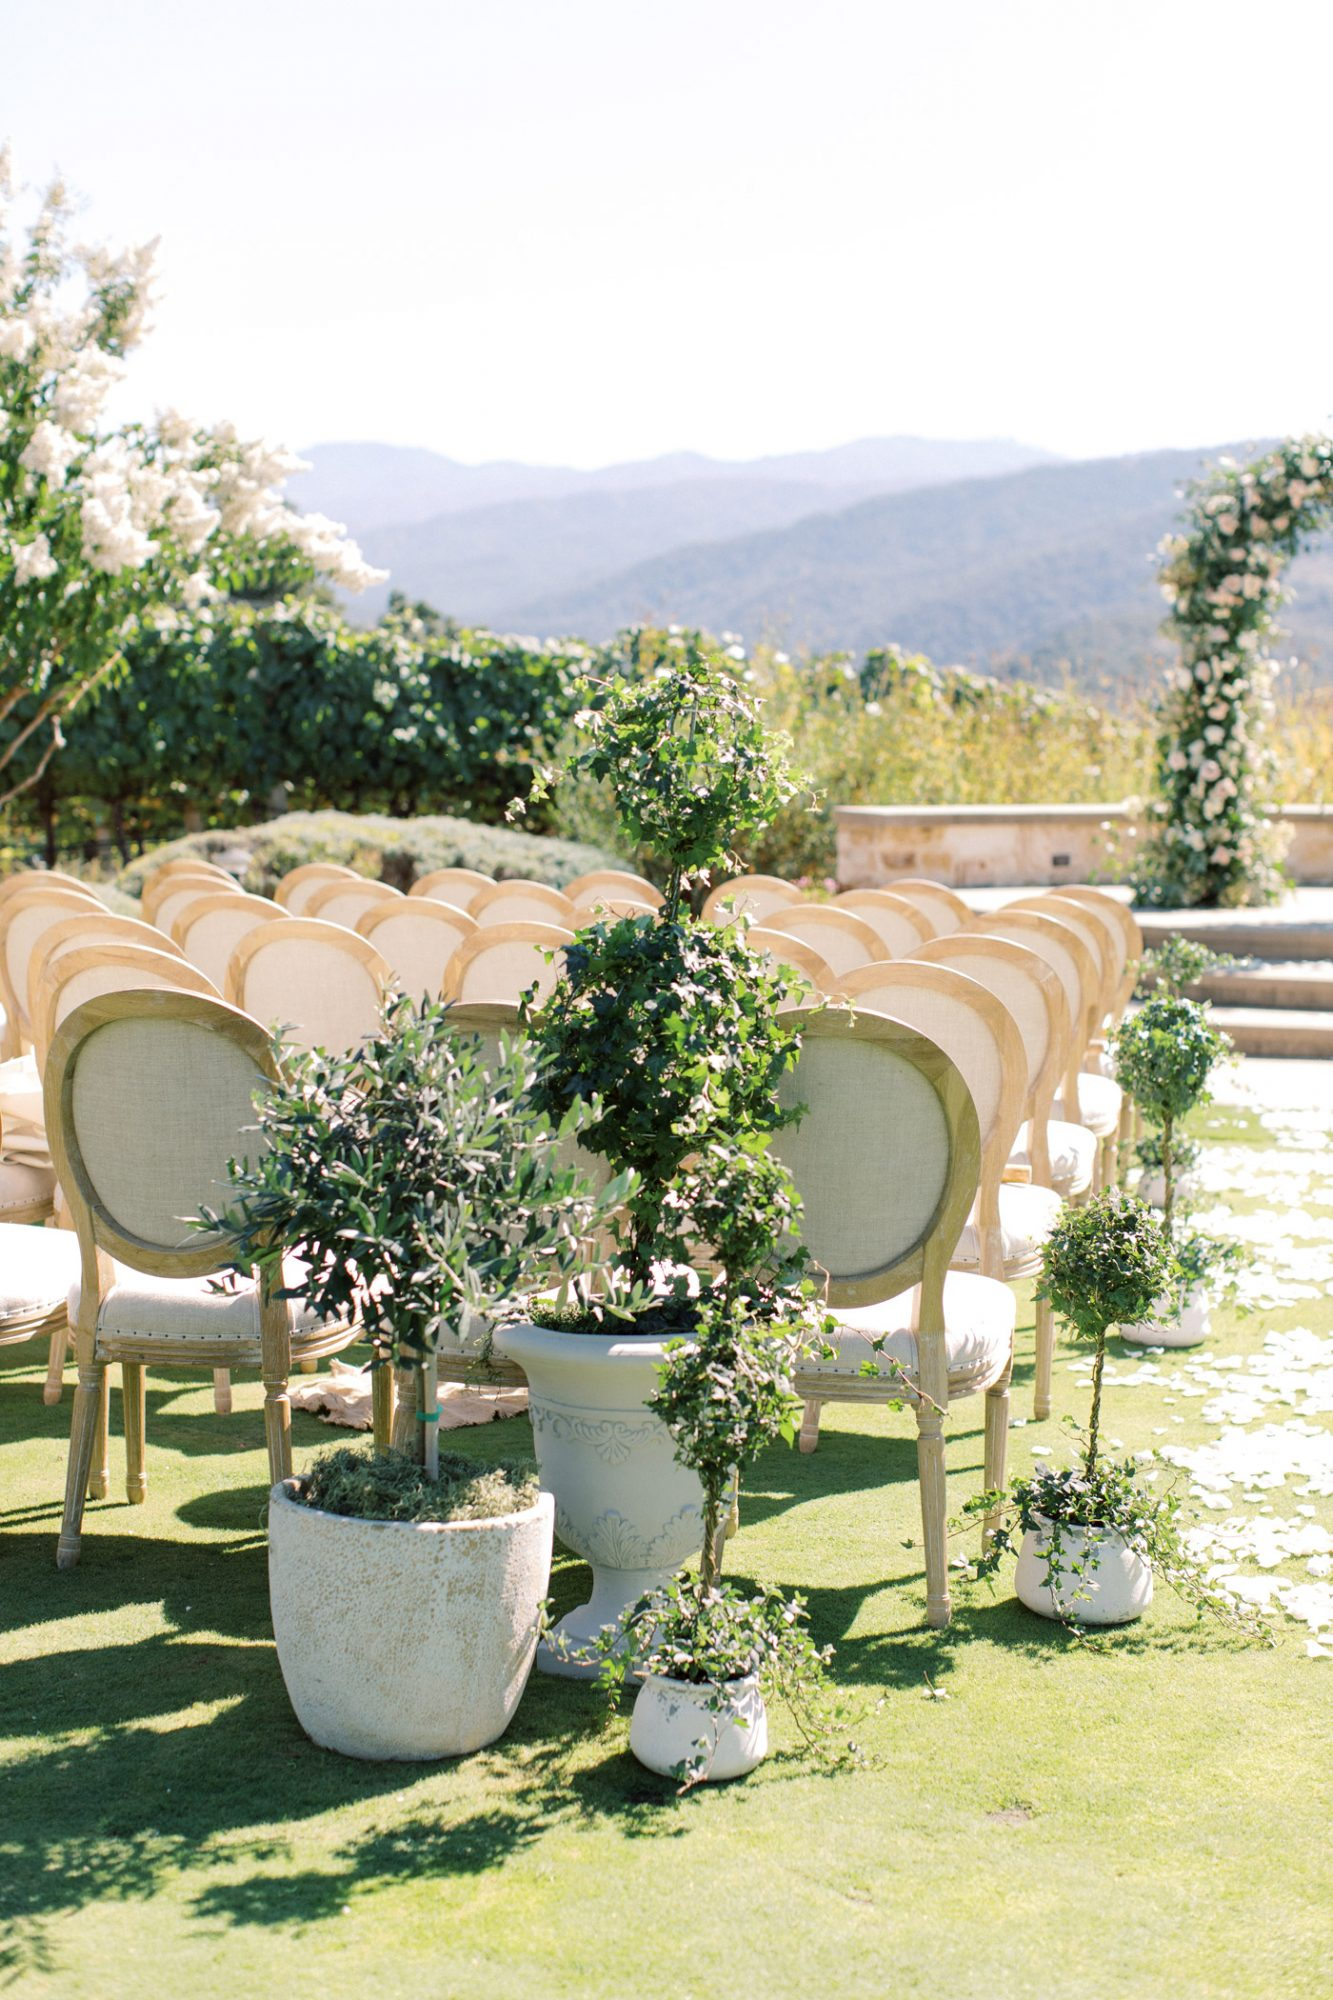 chairs and plants in outdoor ceremony space